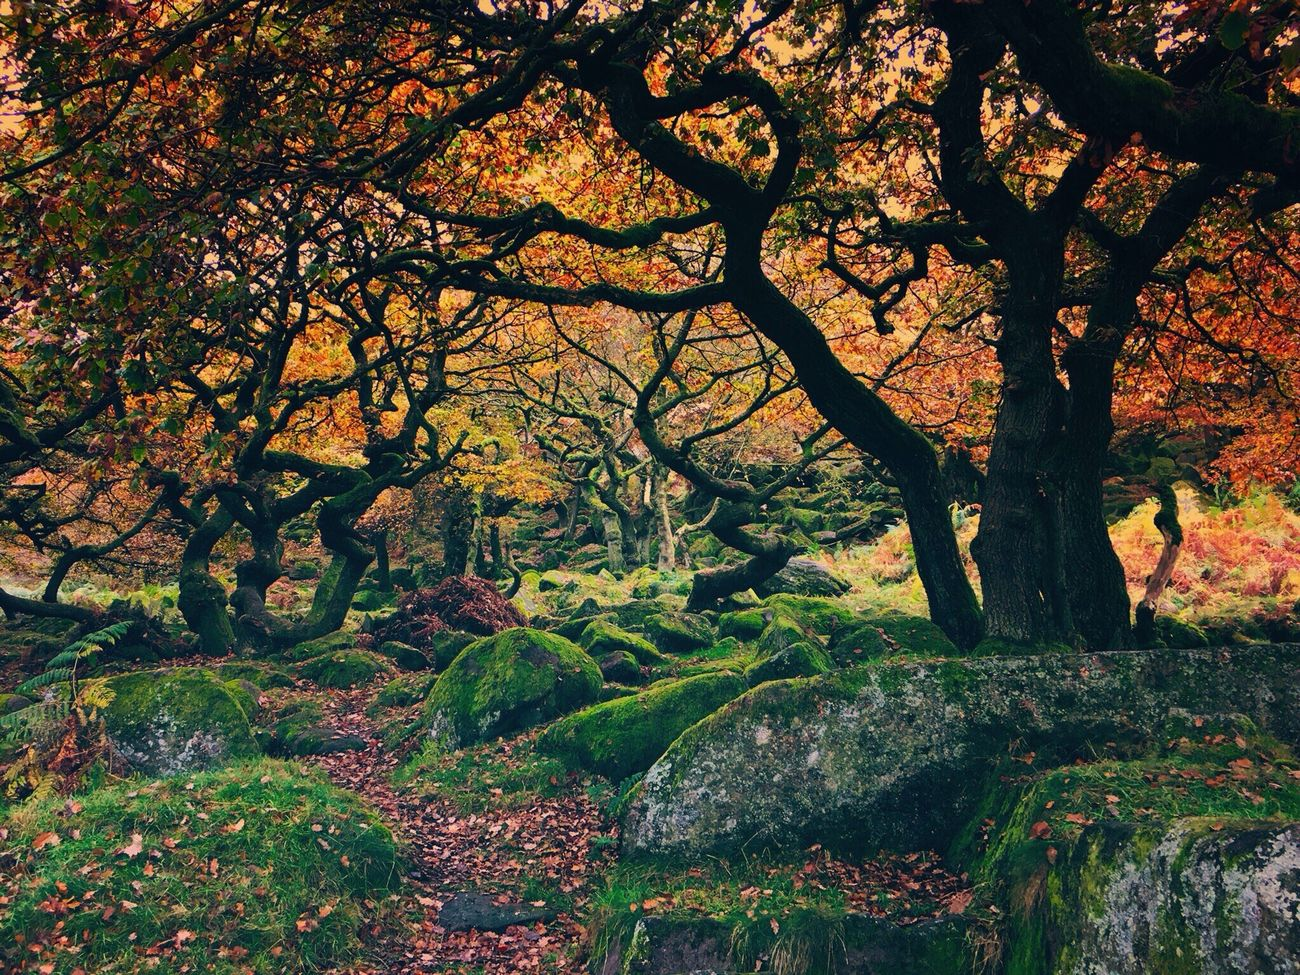 Padley Gorge Derbyshire PeakDistrict Peace And Quiet Tree Nature Beauty In Nature Tranquil Scene Autumn Tranquility Growth Outdoors Scenics No People Day Branch Landscape Leaf Water Sky Nature_collection Landscape_collection EyeEmNatureLover Nature Photography Eyem Best Shots Nature_collection Beauty In Nature Trees